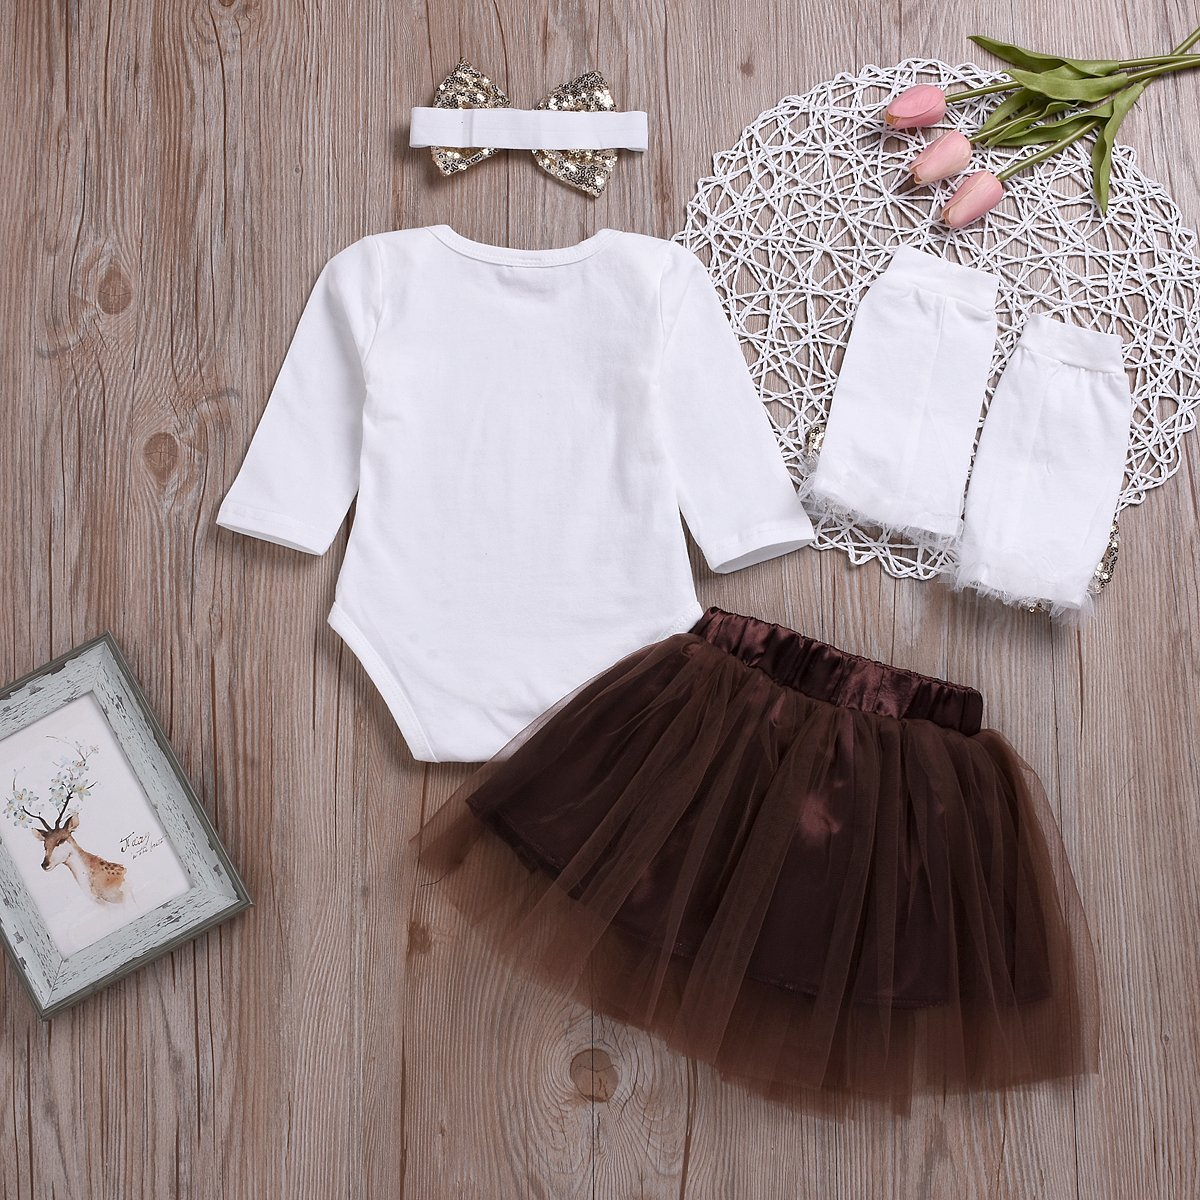 0fdef50eb72b2 Amazon.com  Infant Baby Girls Thanksgiving Outfit Newborn Romper Tops + Tutu  Skirt + Leg Warmers + Headband 4PCS Set (White